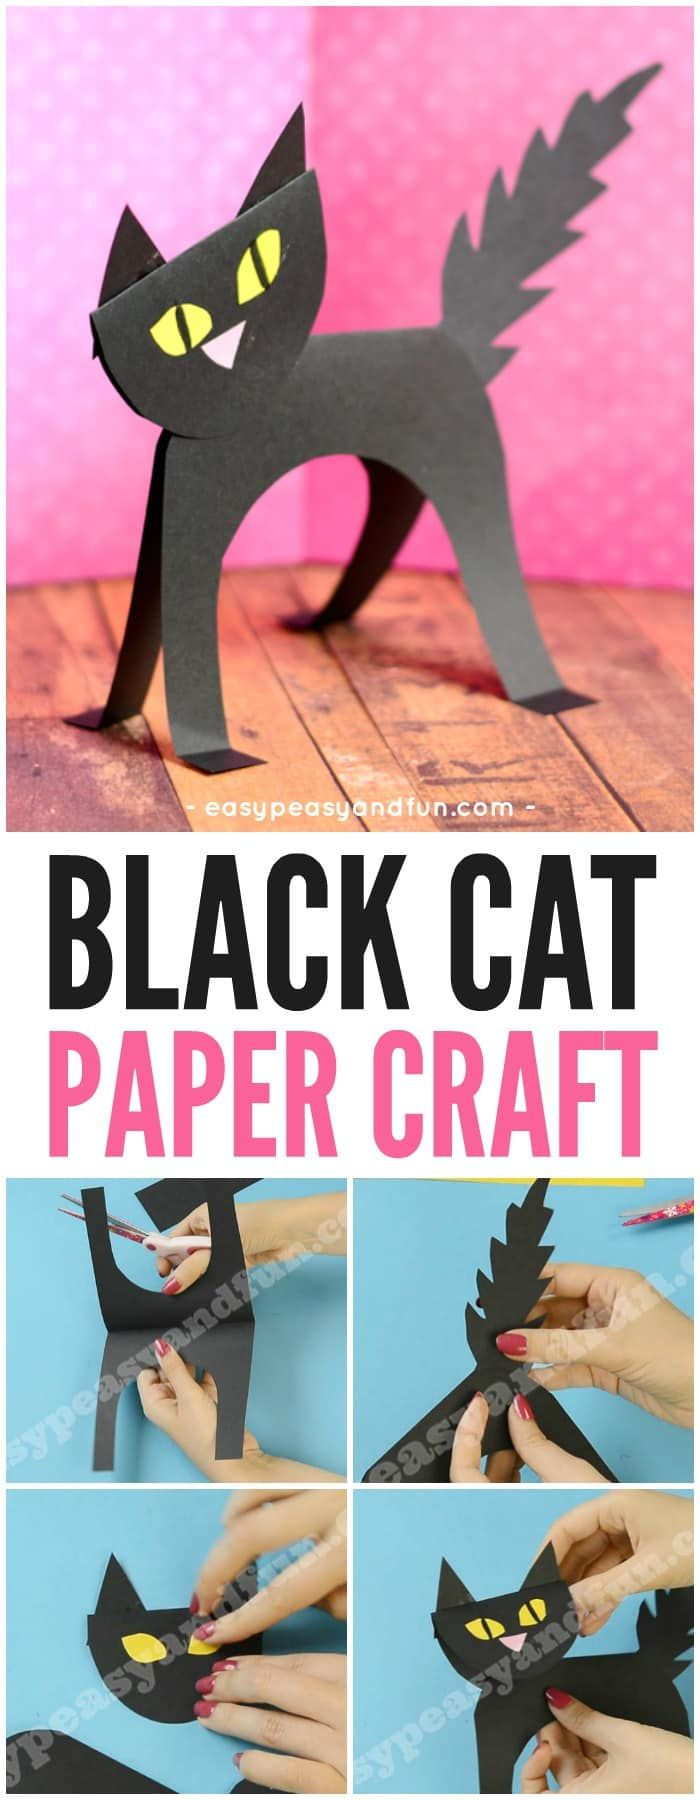 12+ Halloween crafts for kidsblack cats ideas in 2021